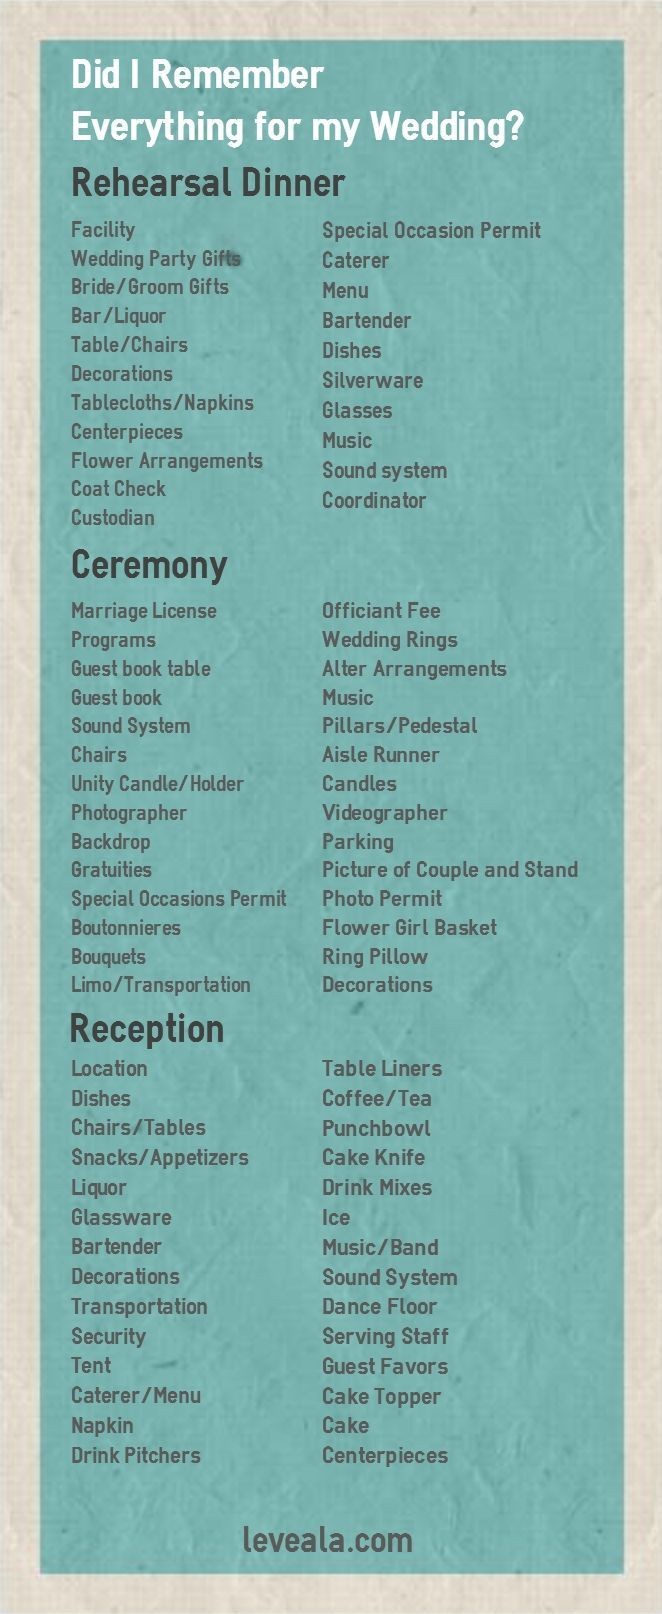 Here is a Wedding Checklist of everything you need to have at your Wedding Rehearsal, Ceremony and Reception! http://www.leveala.com/remember-everything-wedding-wedding-checklist/ Plan your wedding now! - http://tips-wedding.com/how-to-plan-wedding-checklist/